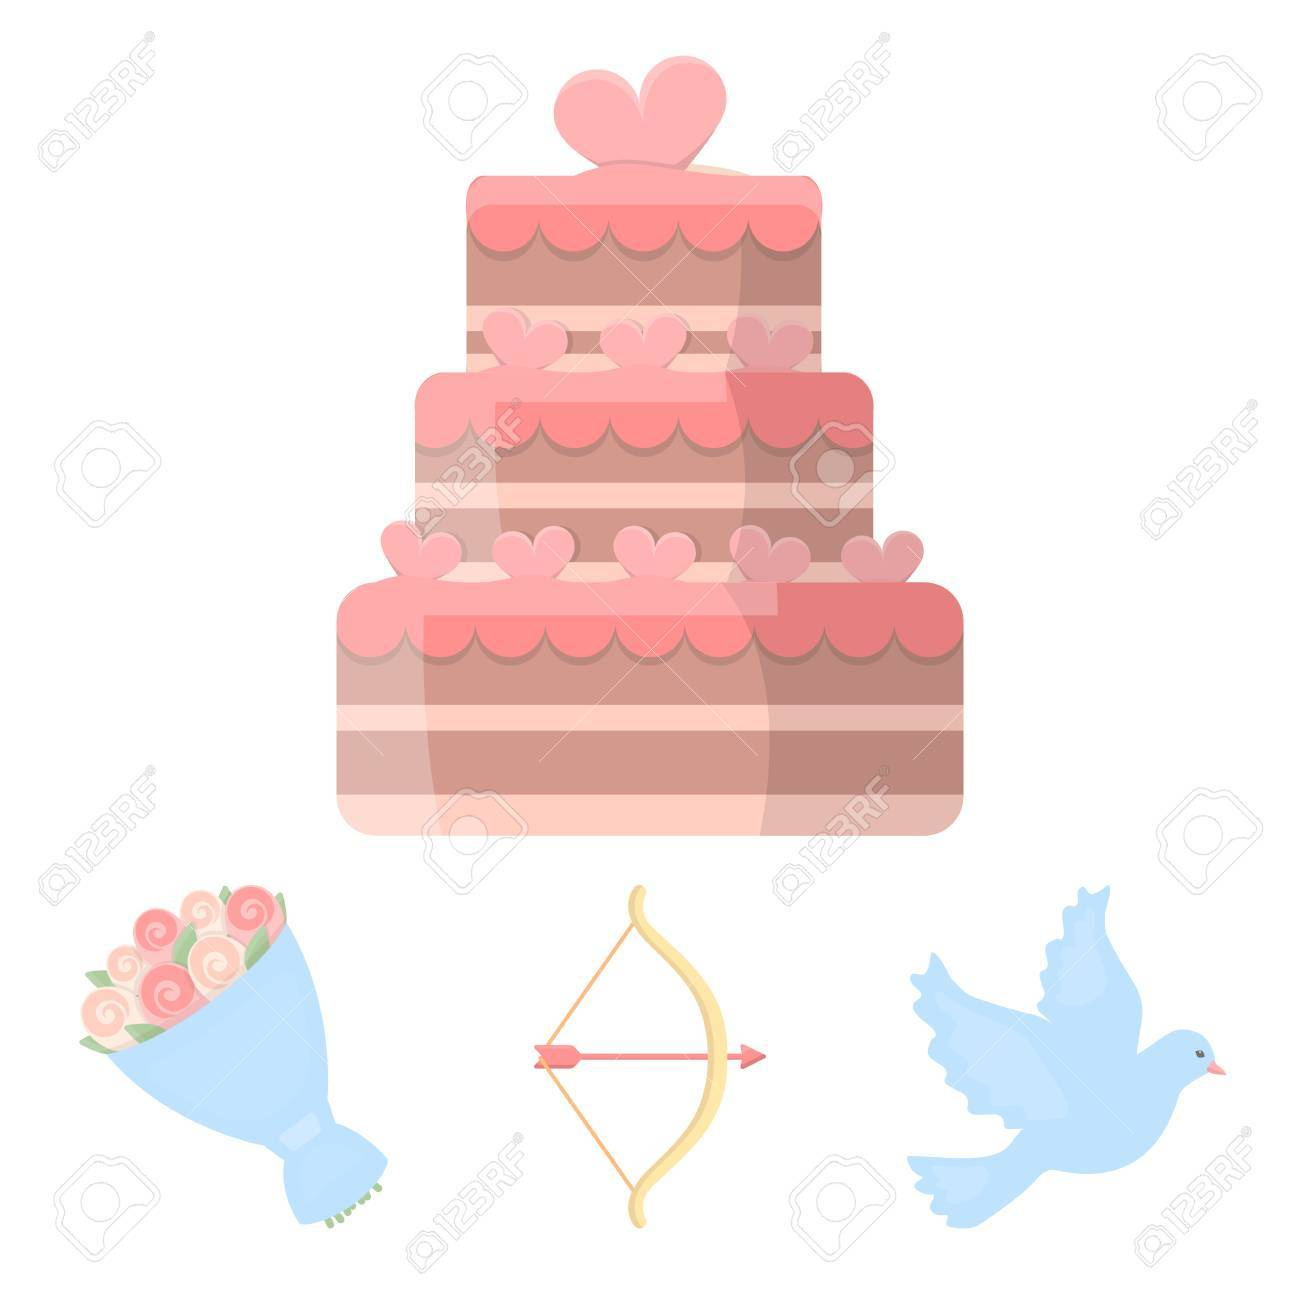 Arrow cupid dove bouquet of flowers wedding cake wedding arrow cupid dove bouquet of flowers wedding cake wedding set collection icons biocorpaavc Image collections